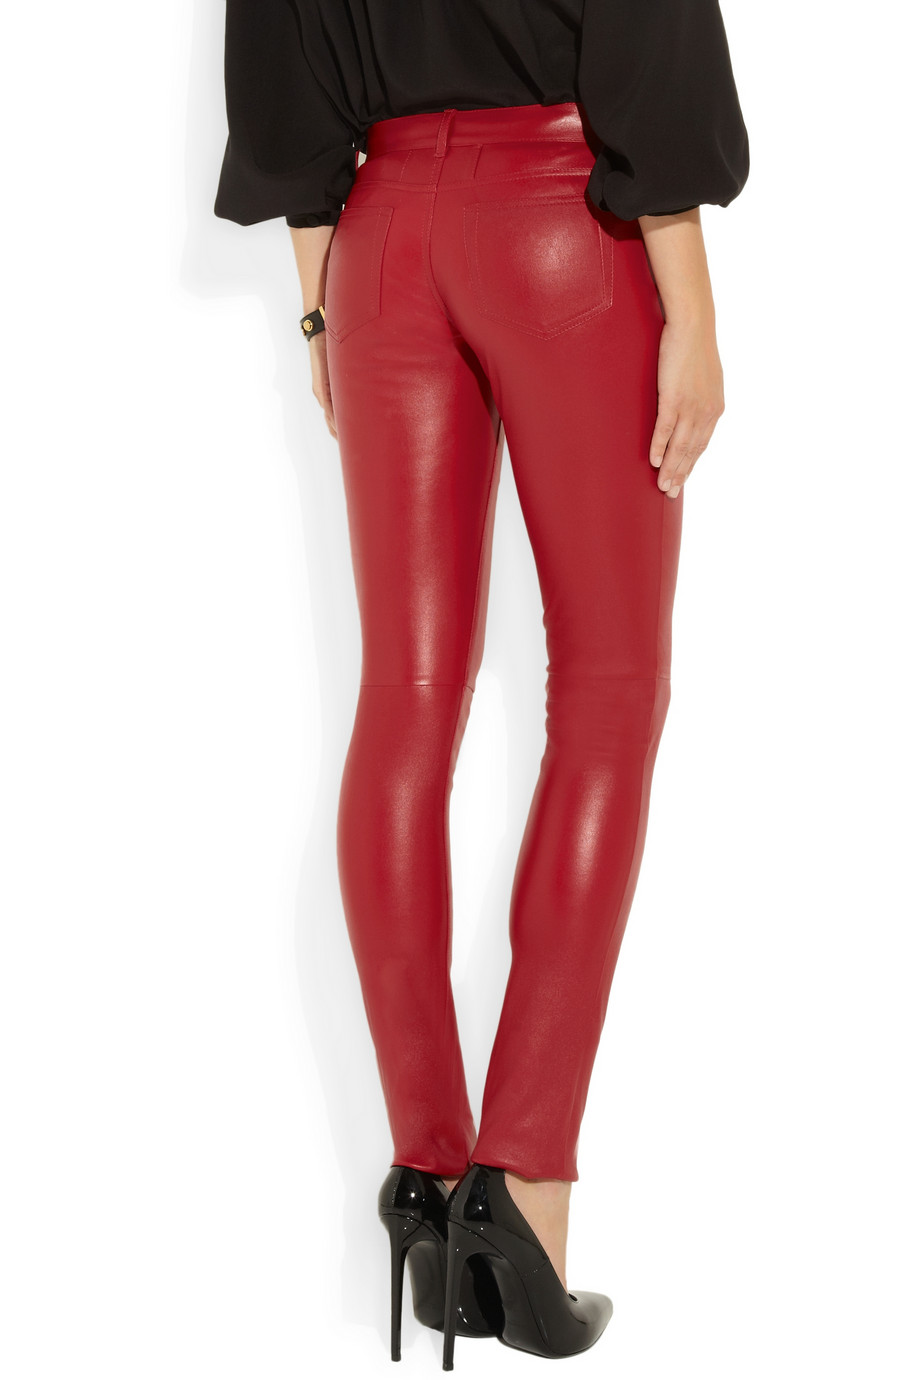 Saint laurent Skinny Stretch-leather Pants in Red